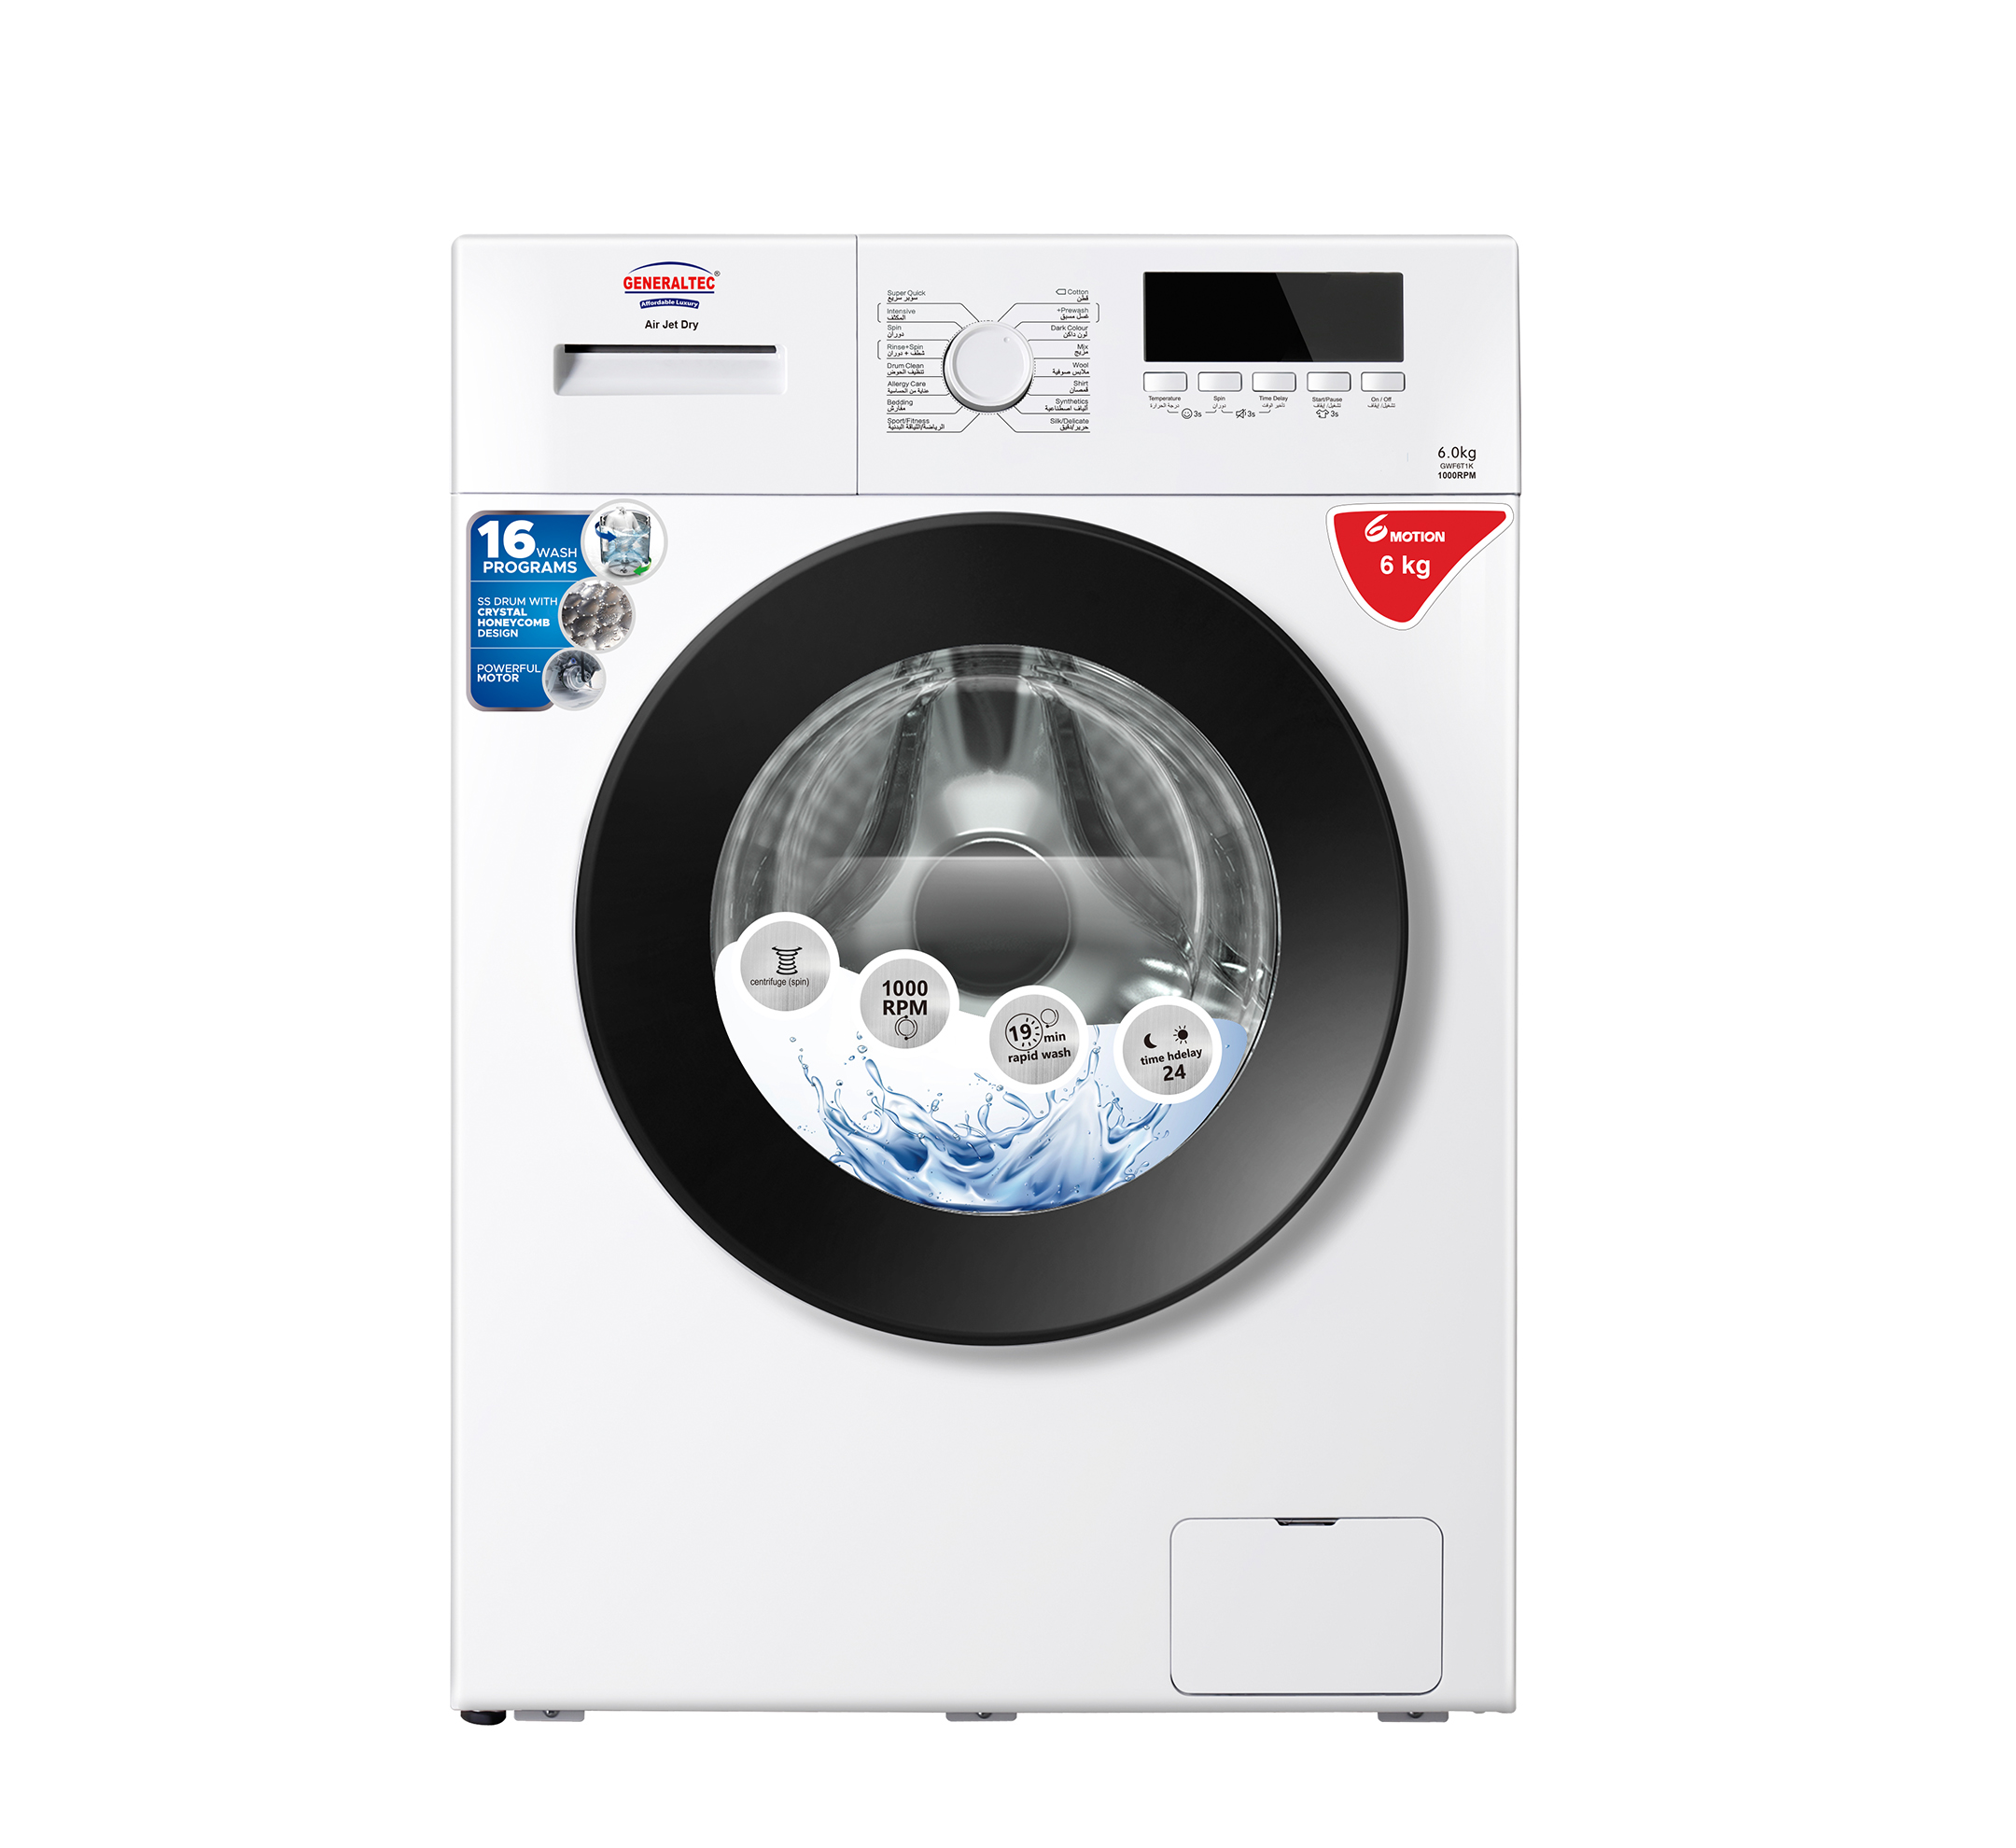 Washing Machine, Model No.GWF6T1K (Front Load , Automatic, 6KG Capacity)